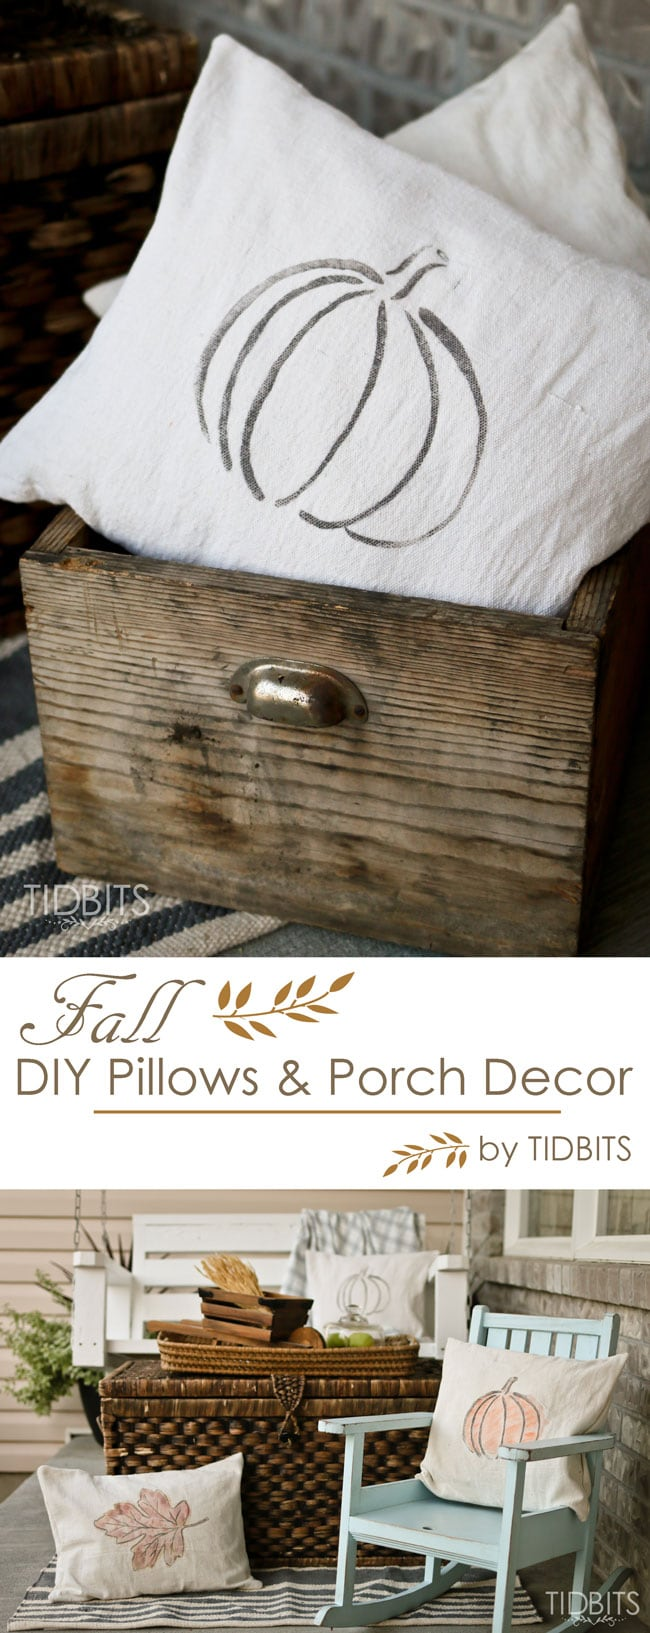 Get the free printables to make your own custom Fall pillows, and find inspiration for your Fall front porch decor.